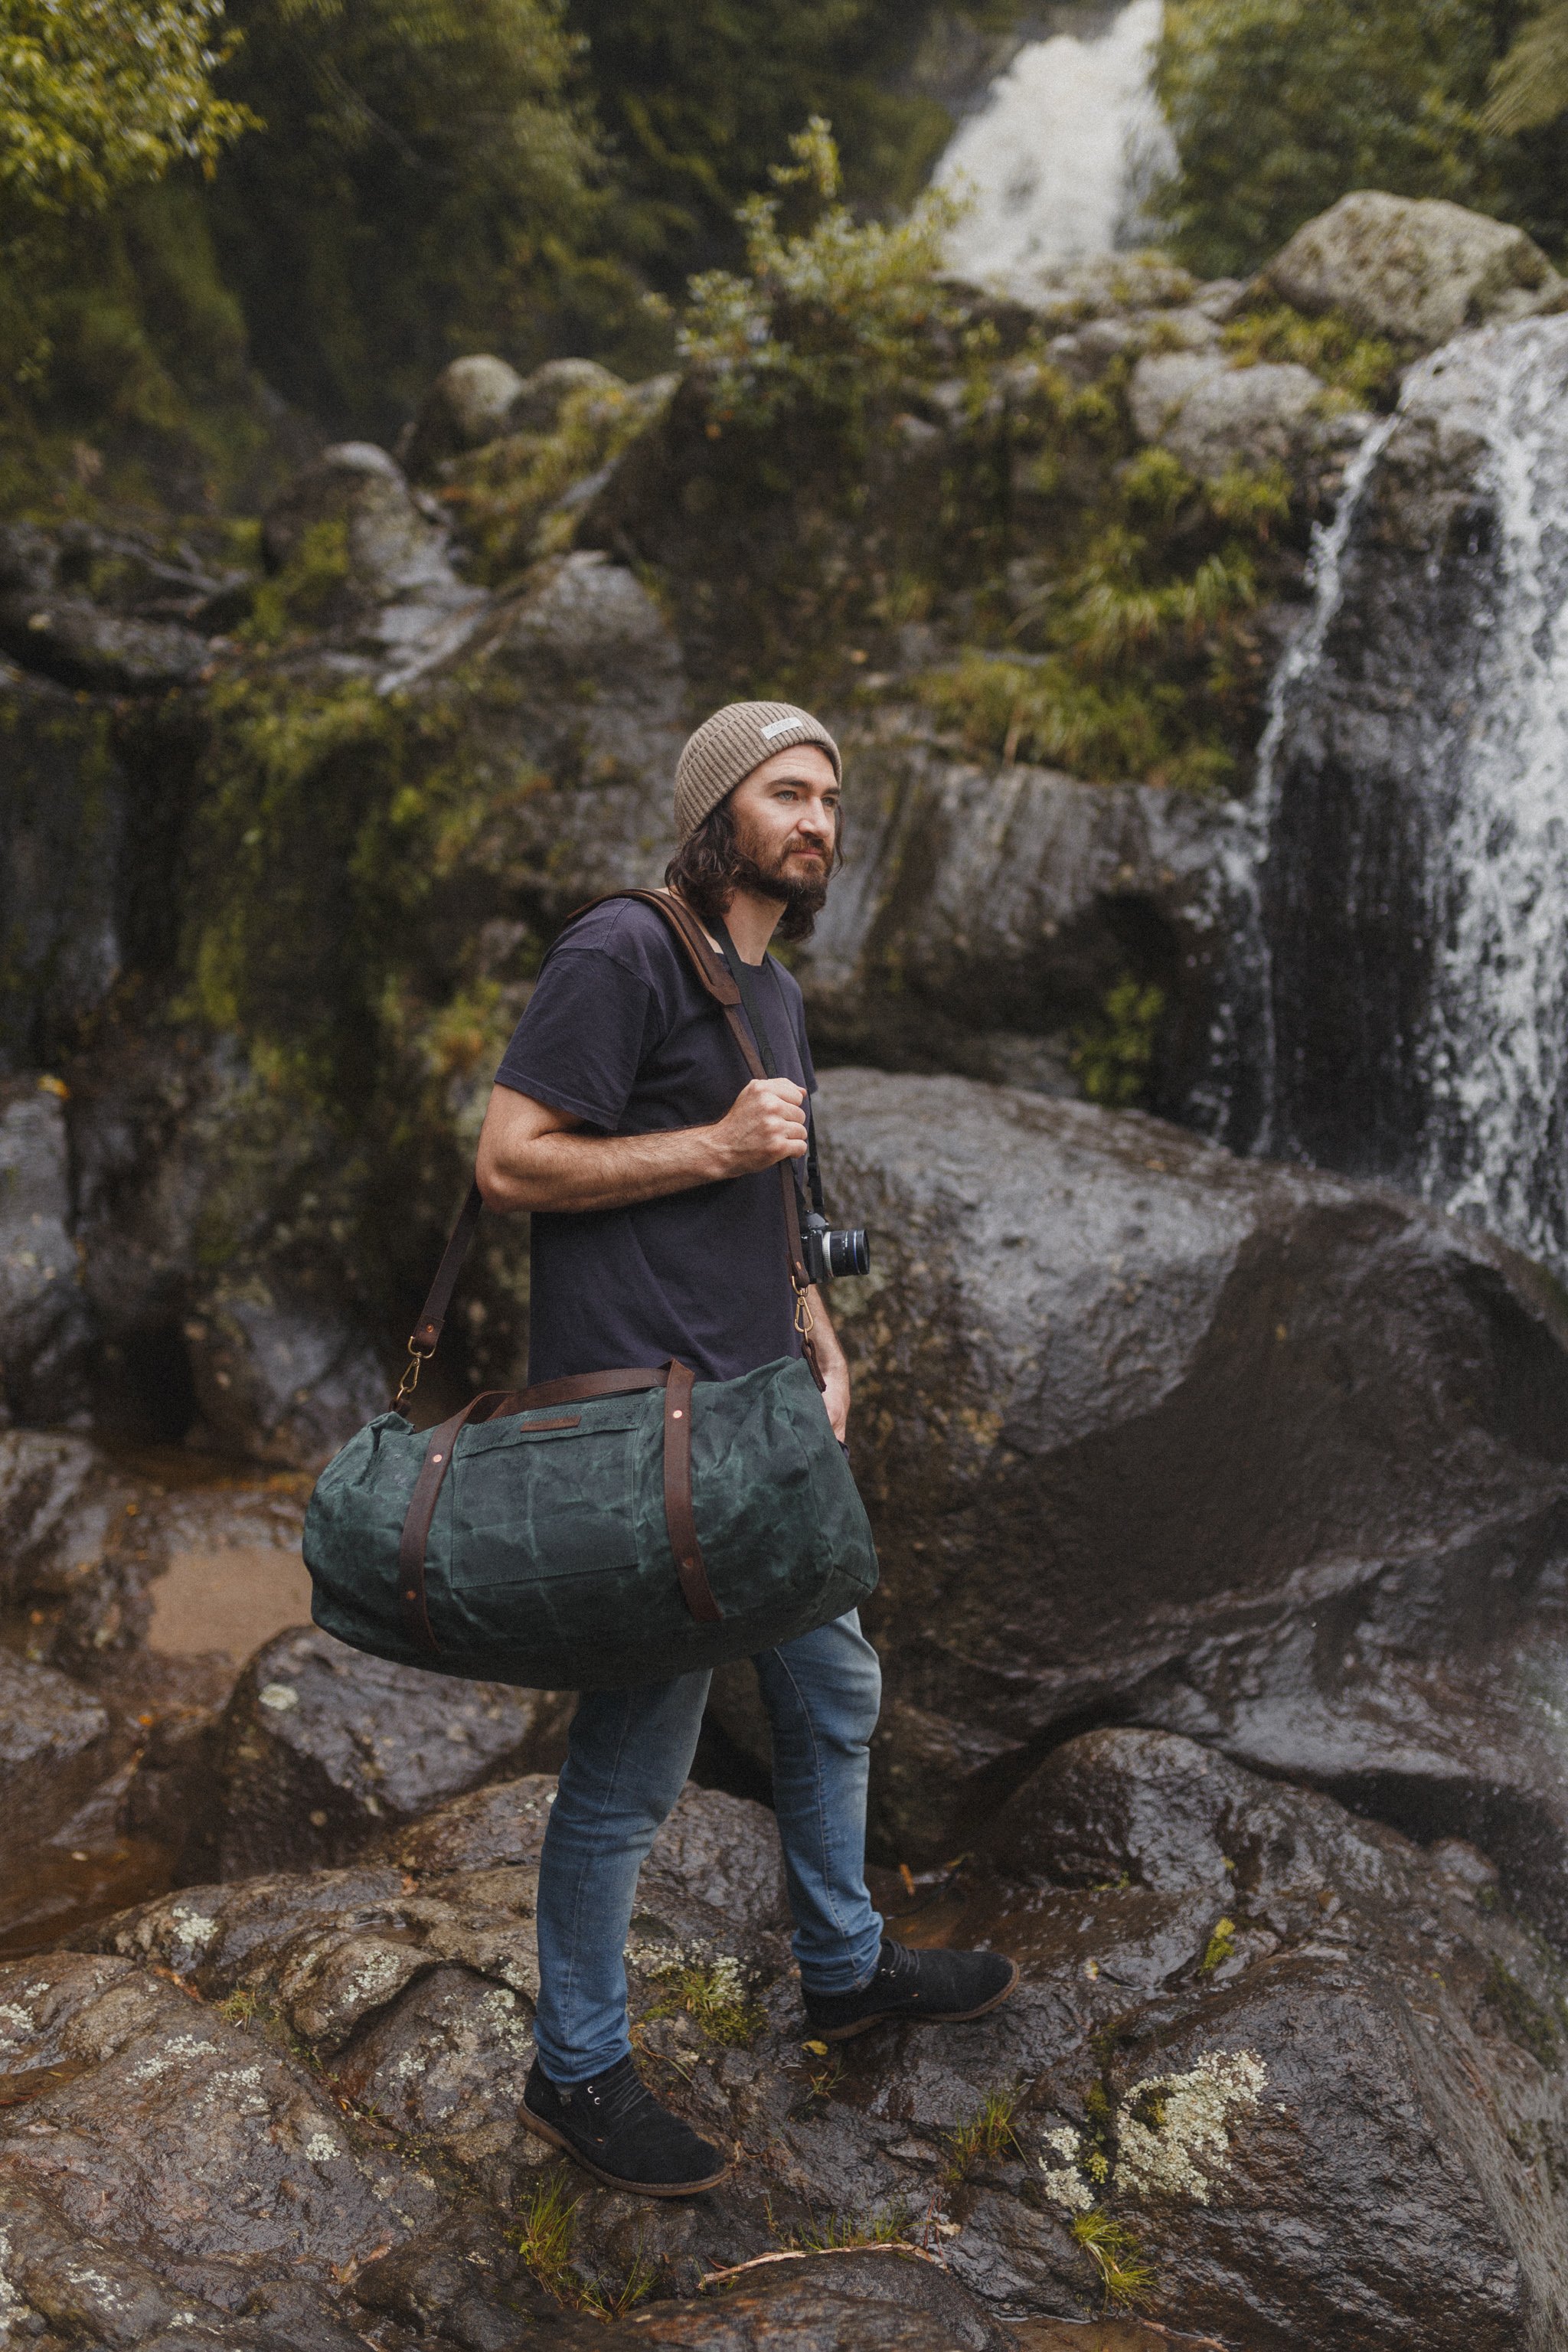 Forest-Lane-Goods_Product-Photography_New-Zealand_03.jpg